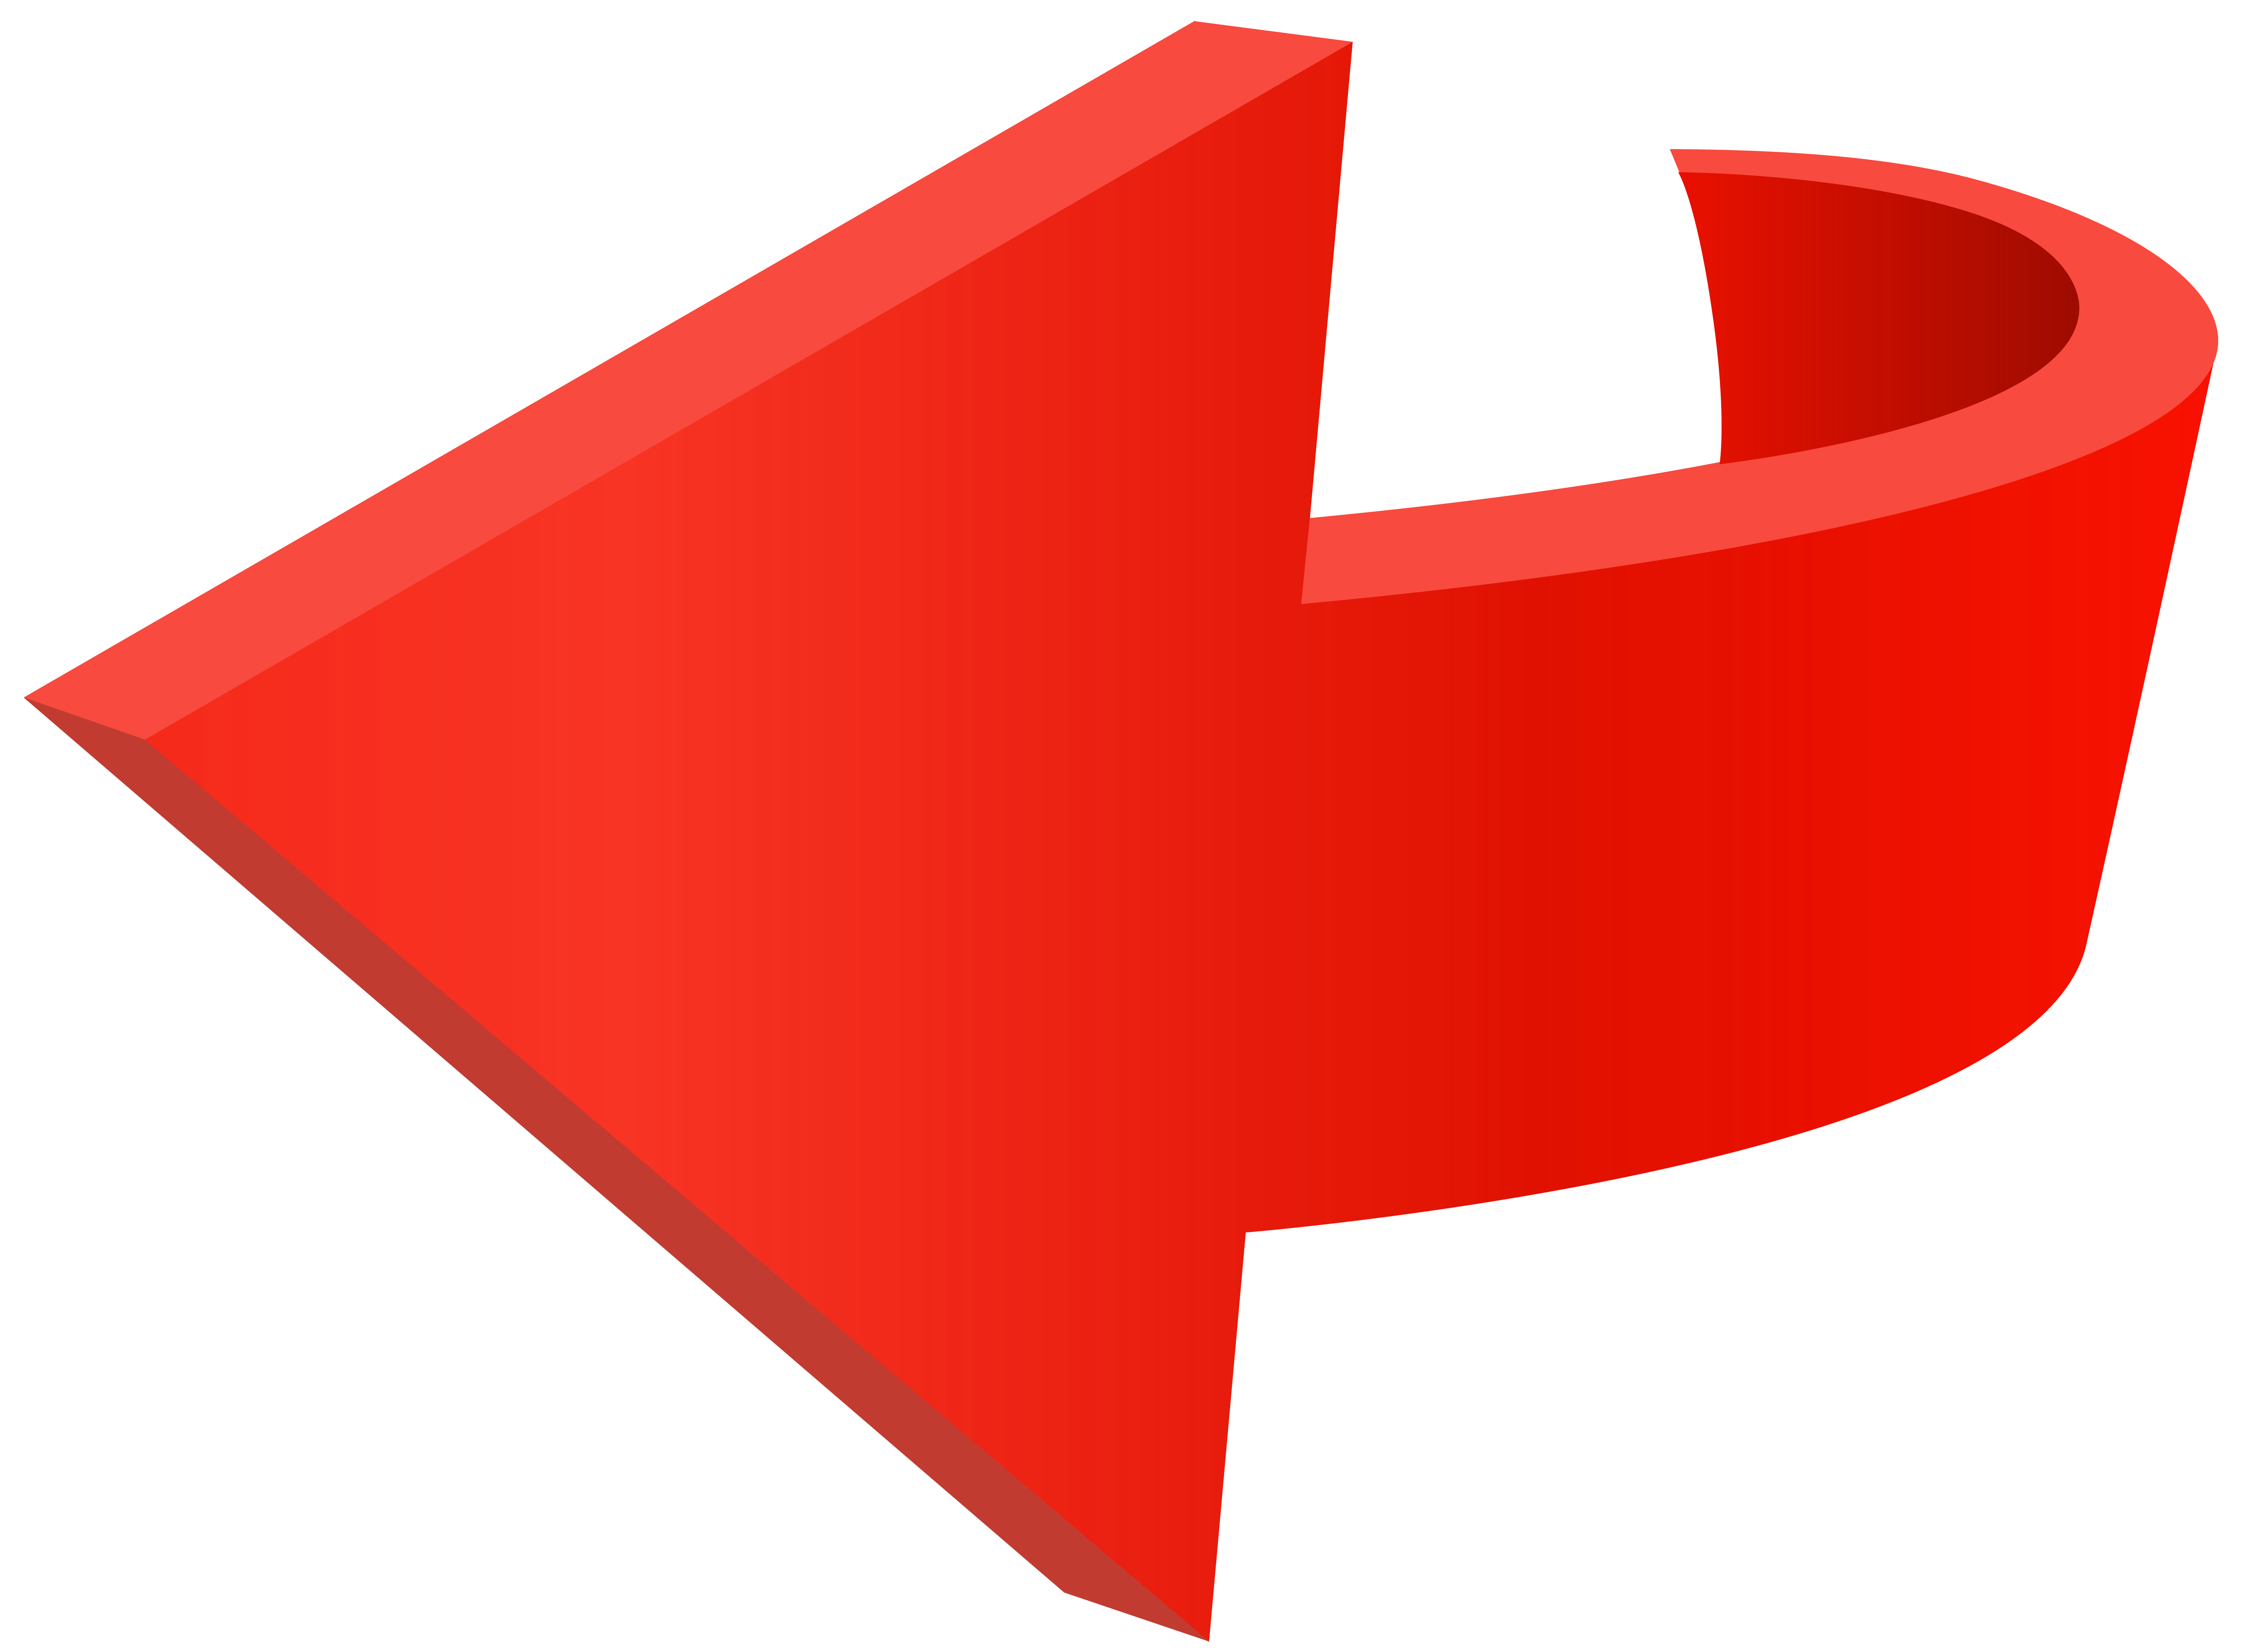 Left red transparent png. Warrior clipart arrow